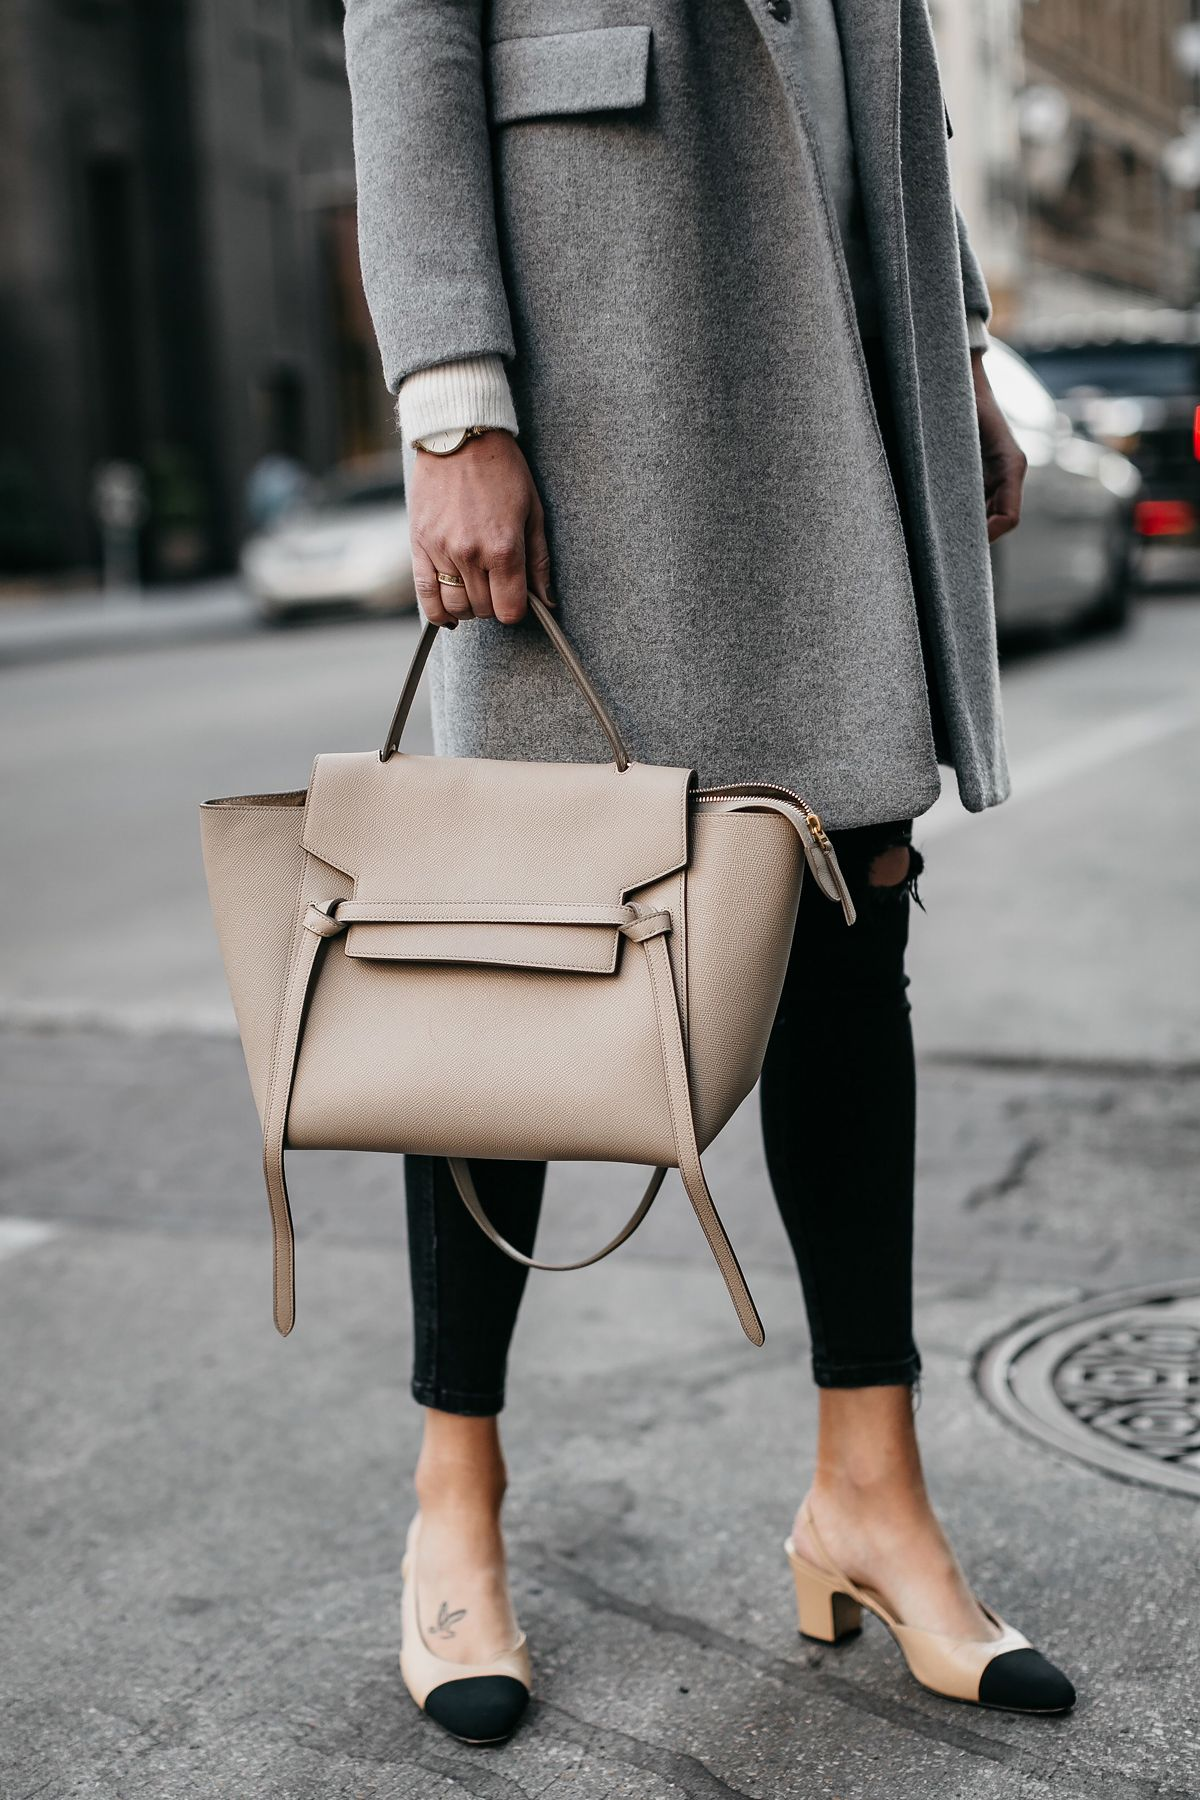 Celine Mini Belt Bag Chanel Slingbacks Grey Wool Coat Fashion Jackson  Dallas Blogger Fashion Blogger Street Style 9c1c00200ccab